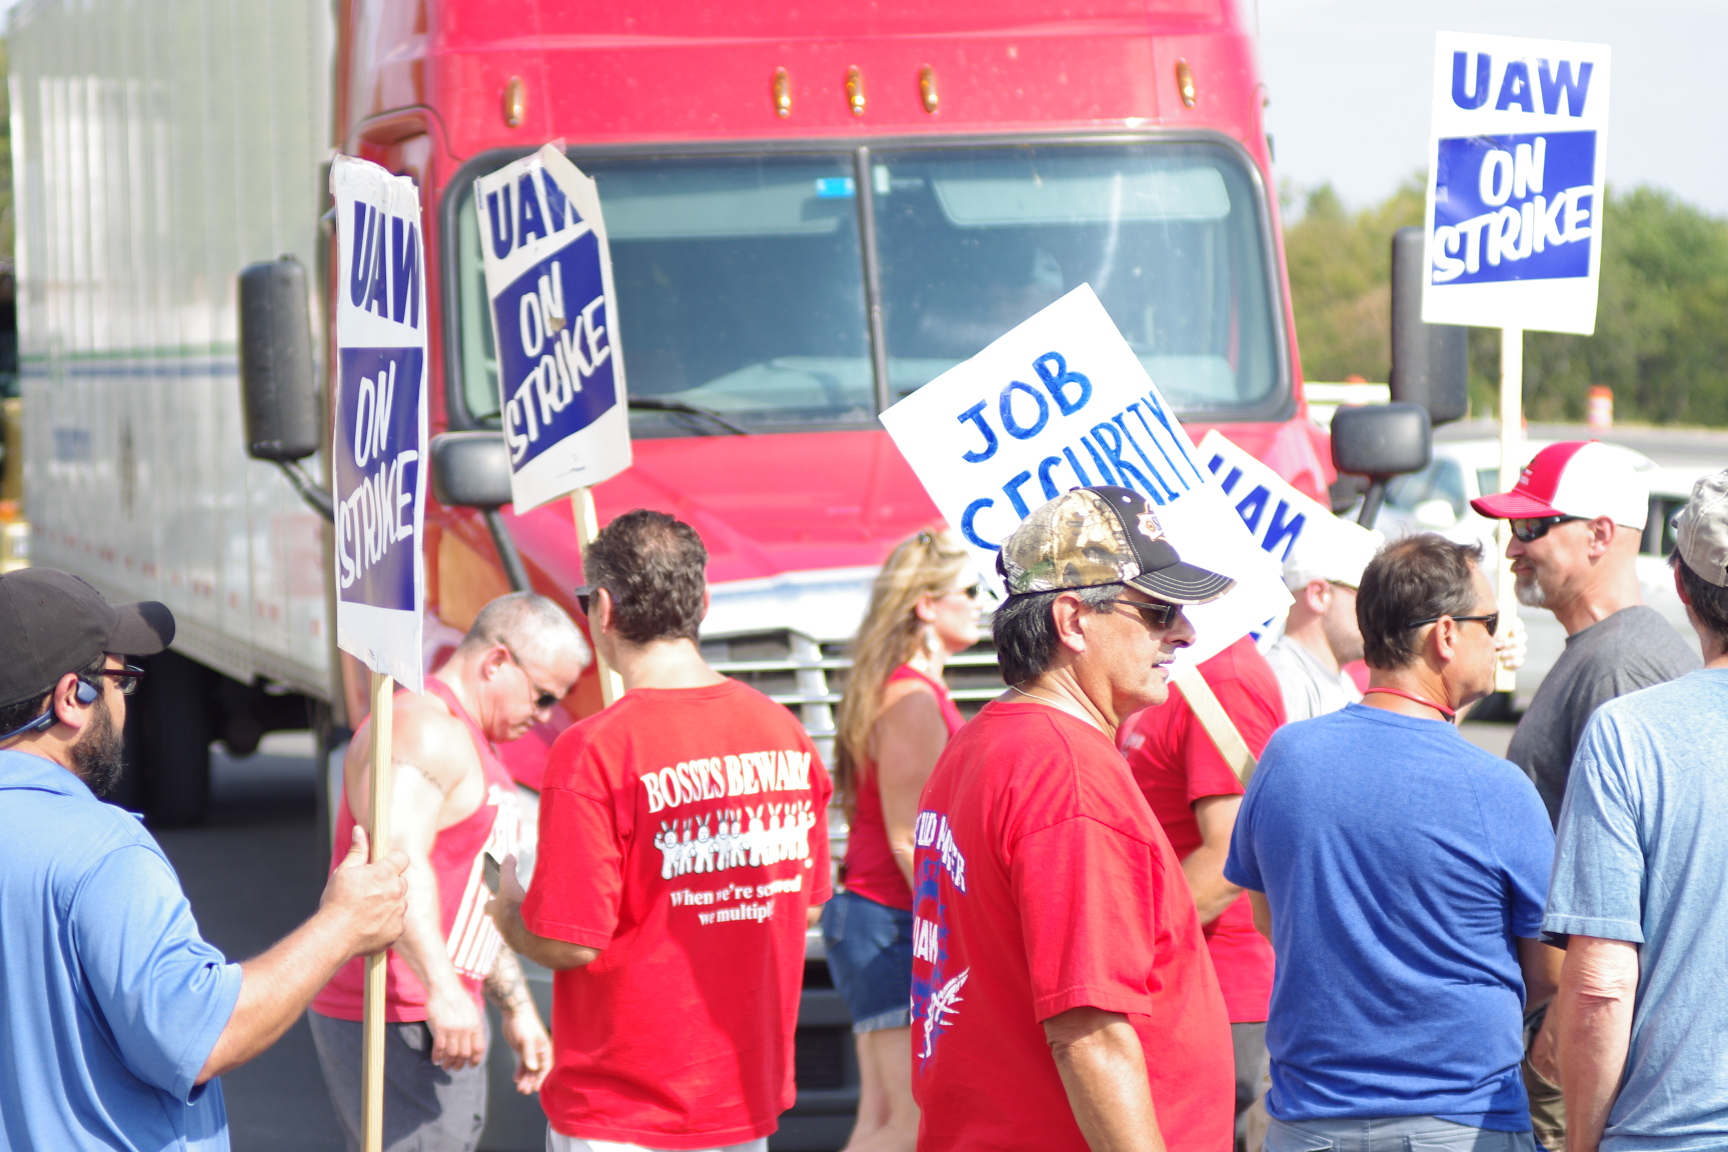 Spring Hill GM workers compromise with law enforcement on blocking truck access to plant